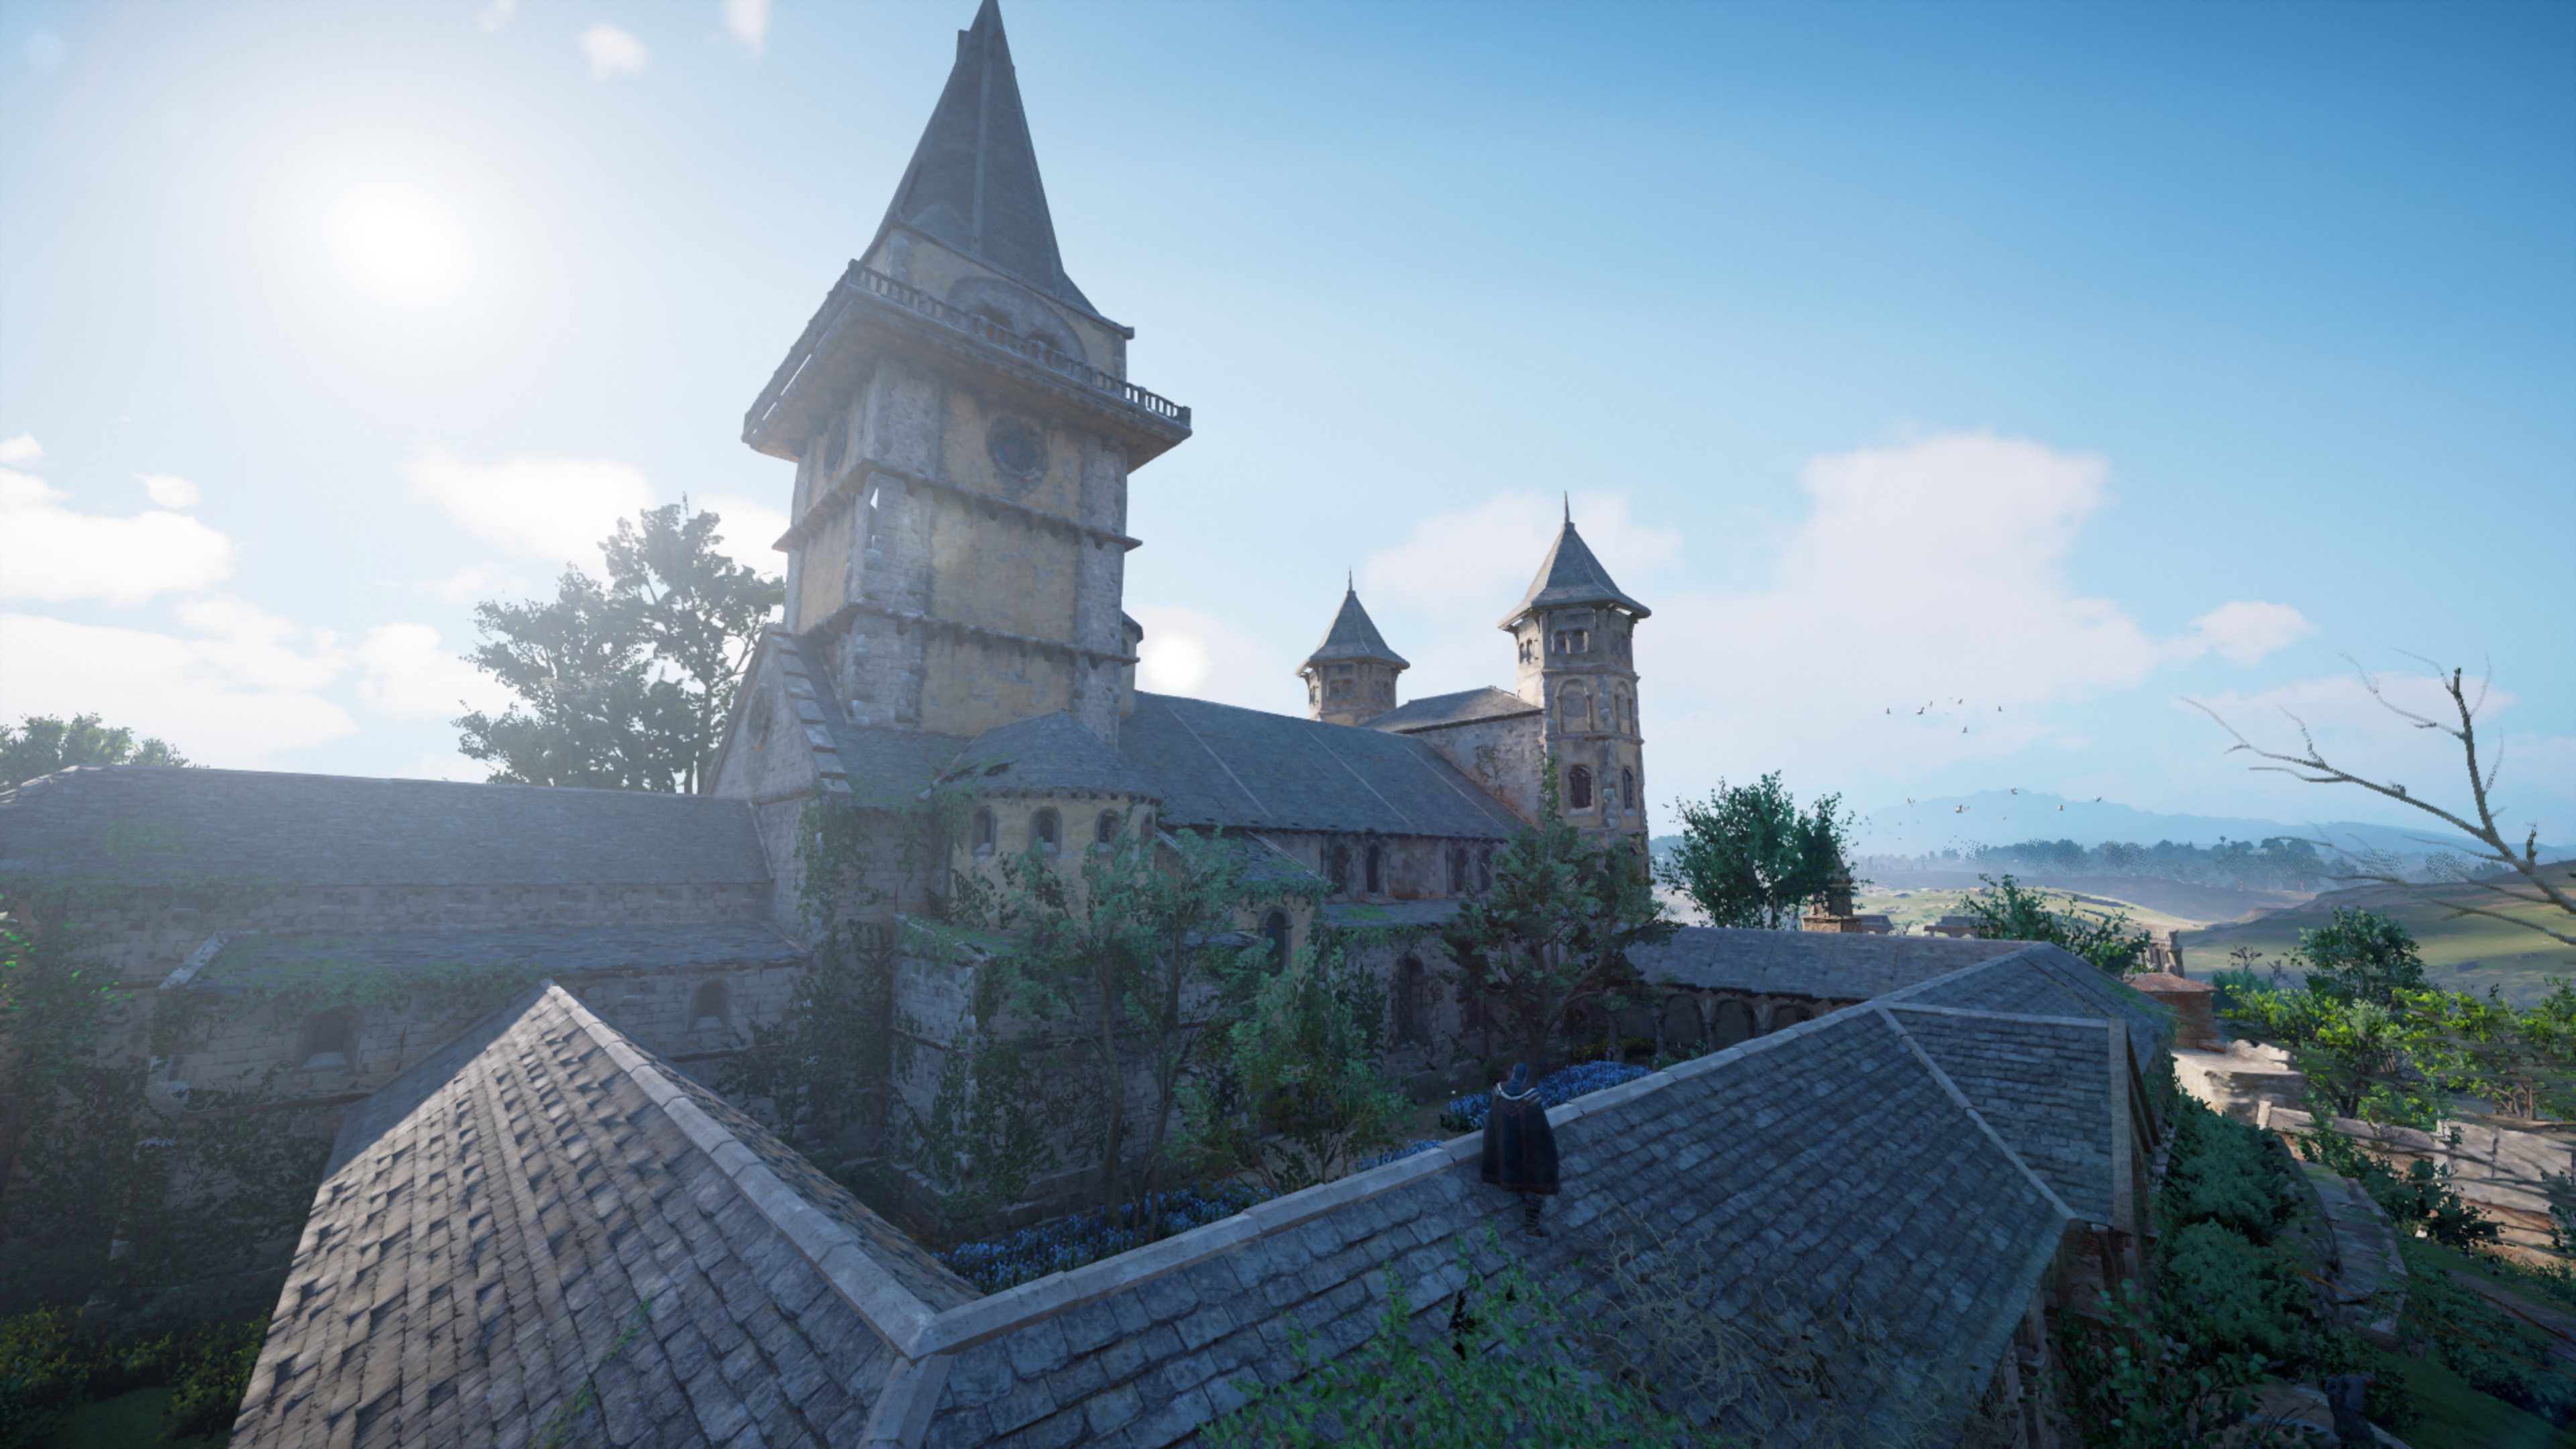 Assassin's Creed Valhalla guide: All Cent Wealth, Mysteries, and Artifacts